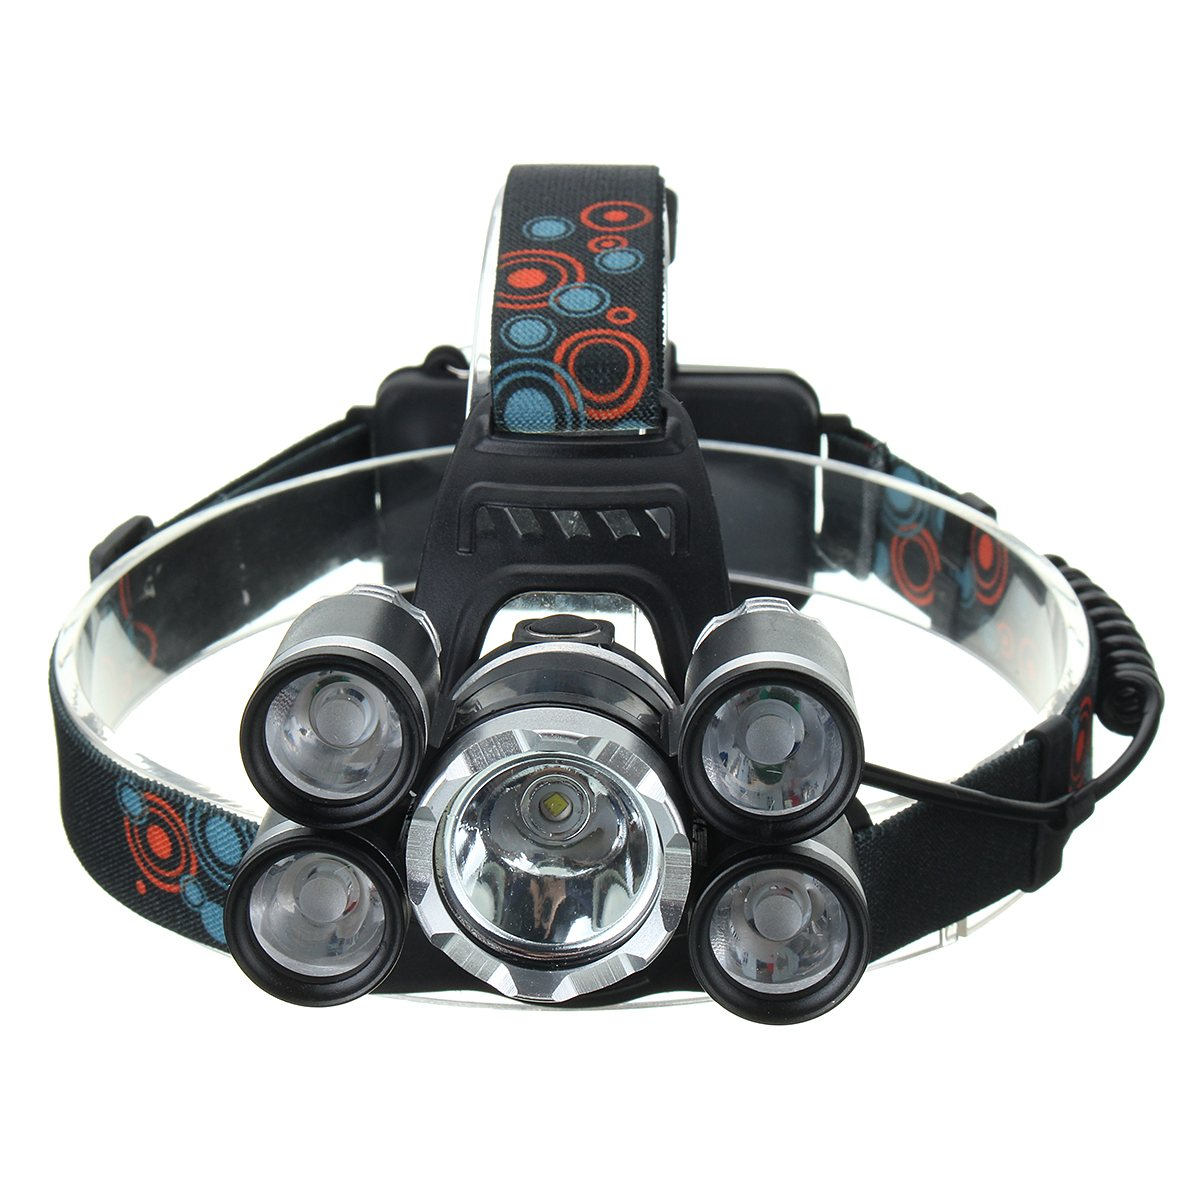 50000 Lumens 4 Modes XM-L T6 XPE Waterproof LED Headlamp Cycling Headlight Torch for Bicycle Bike Outdoor Camping New 3800 lumens cree xm l t6 5 modes led tactical flashlight torch waterproof lamp torch hunting flash light lantern for camping z93